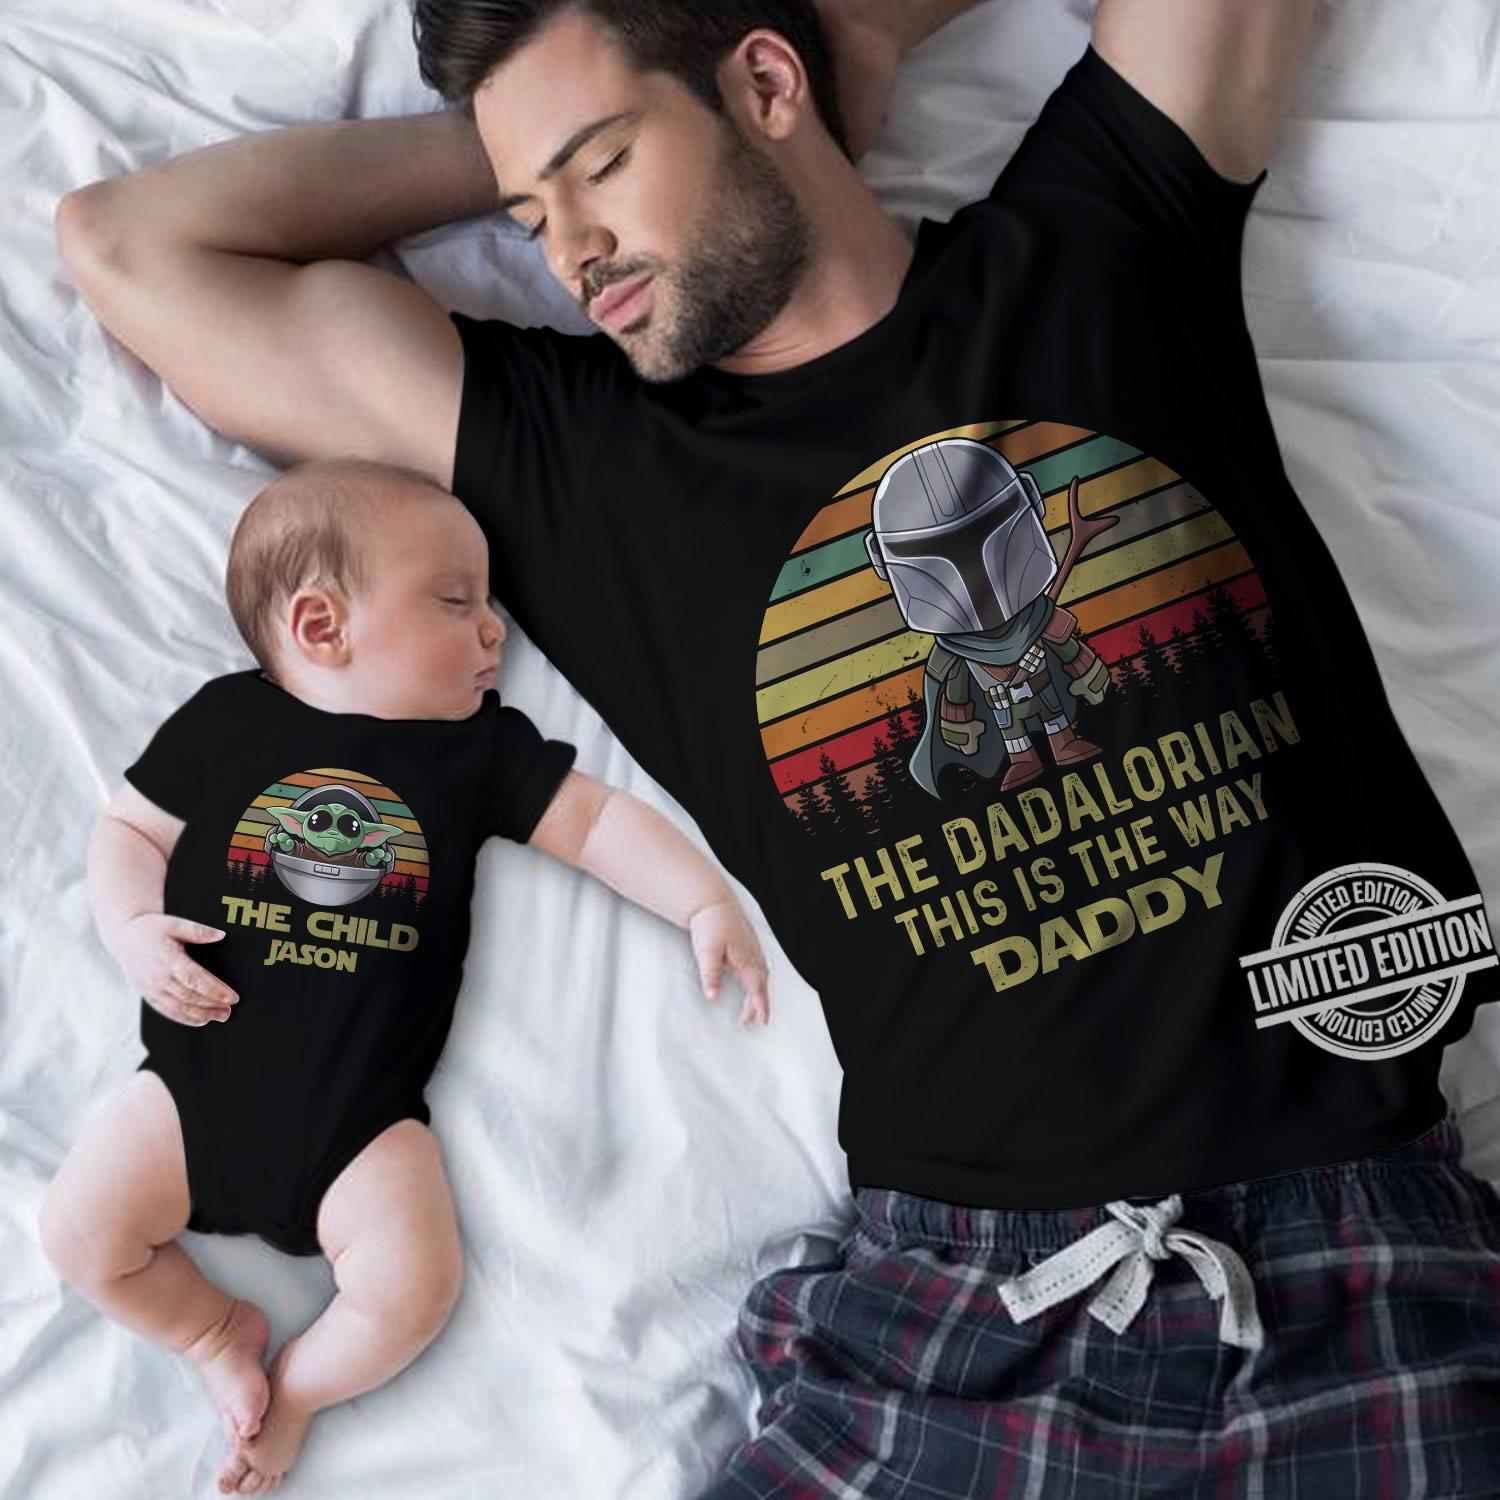 The Dadalorian This Is The Way Daddy Shirt